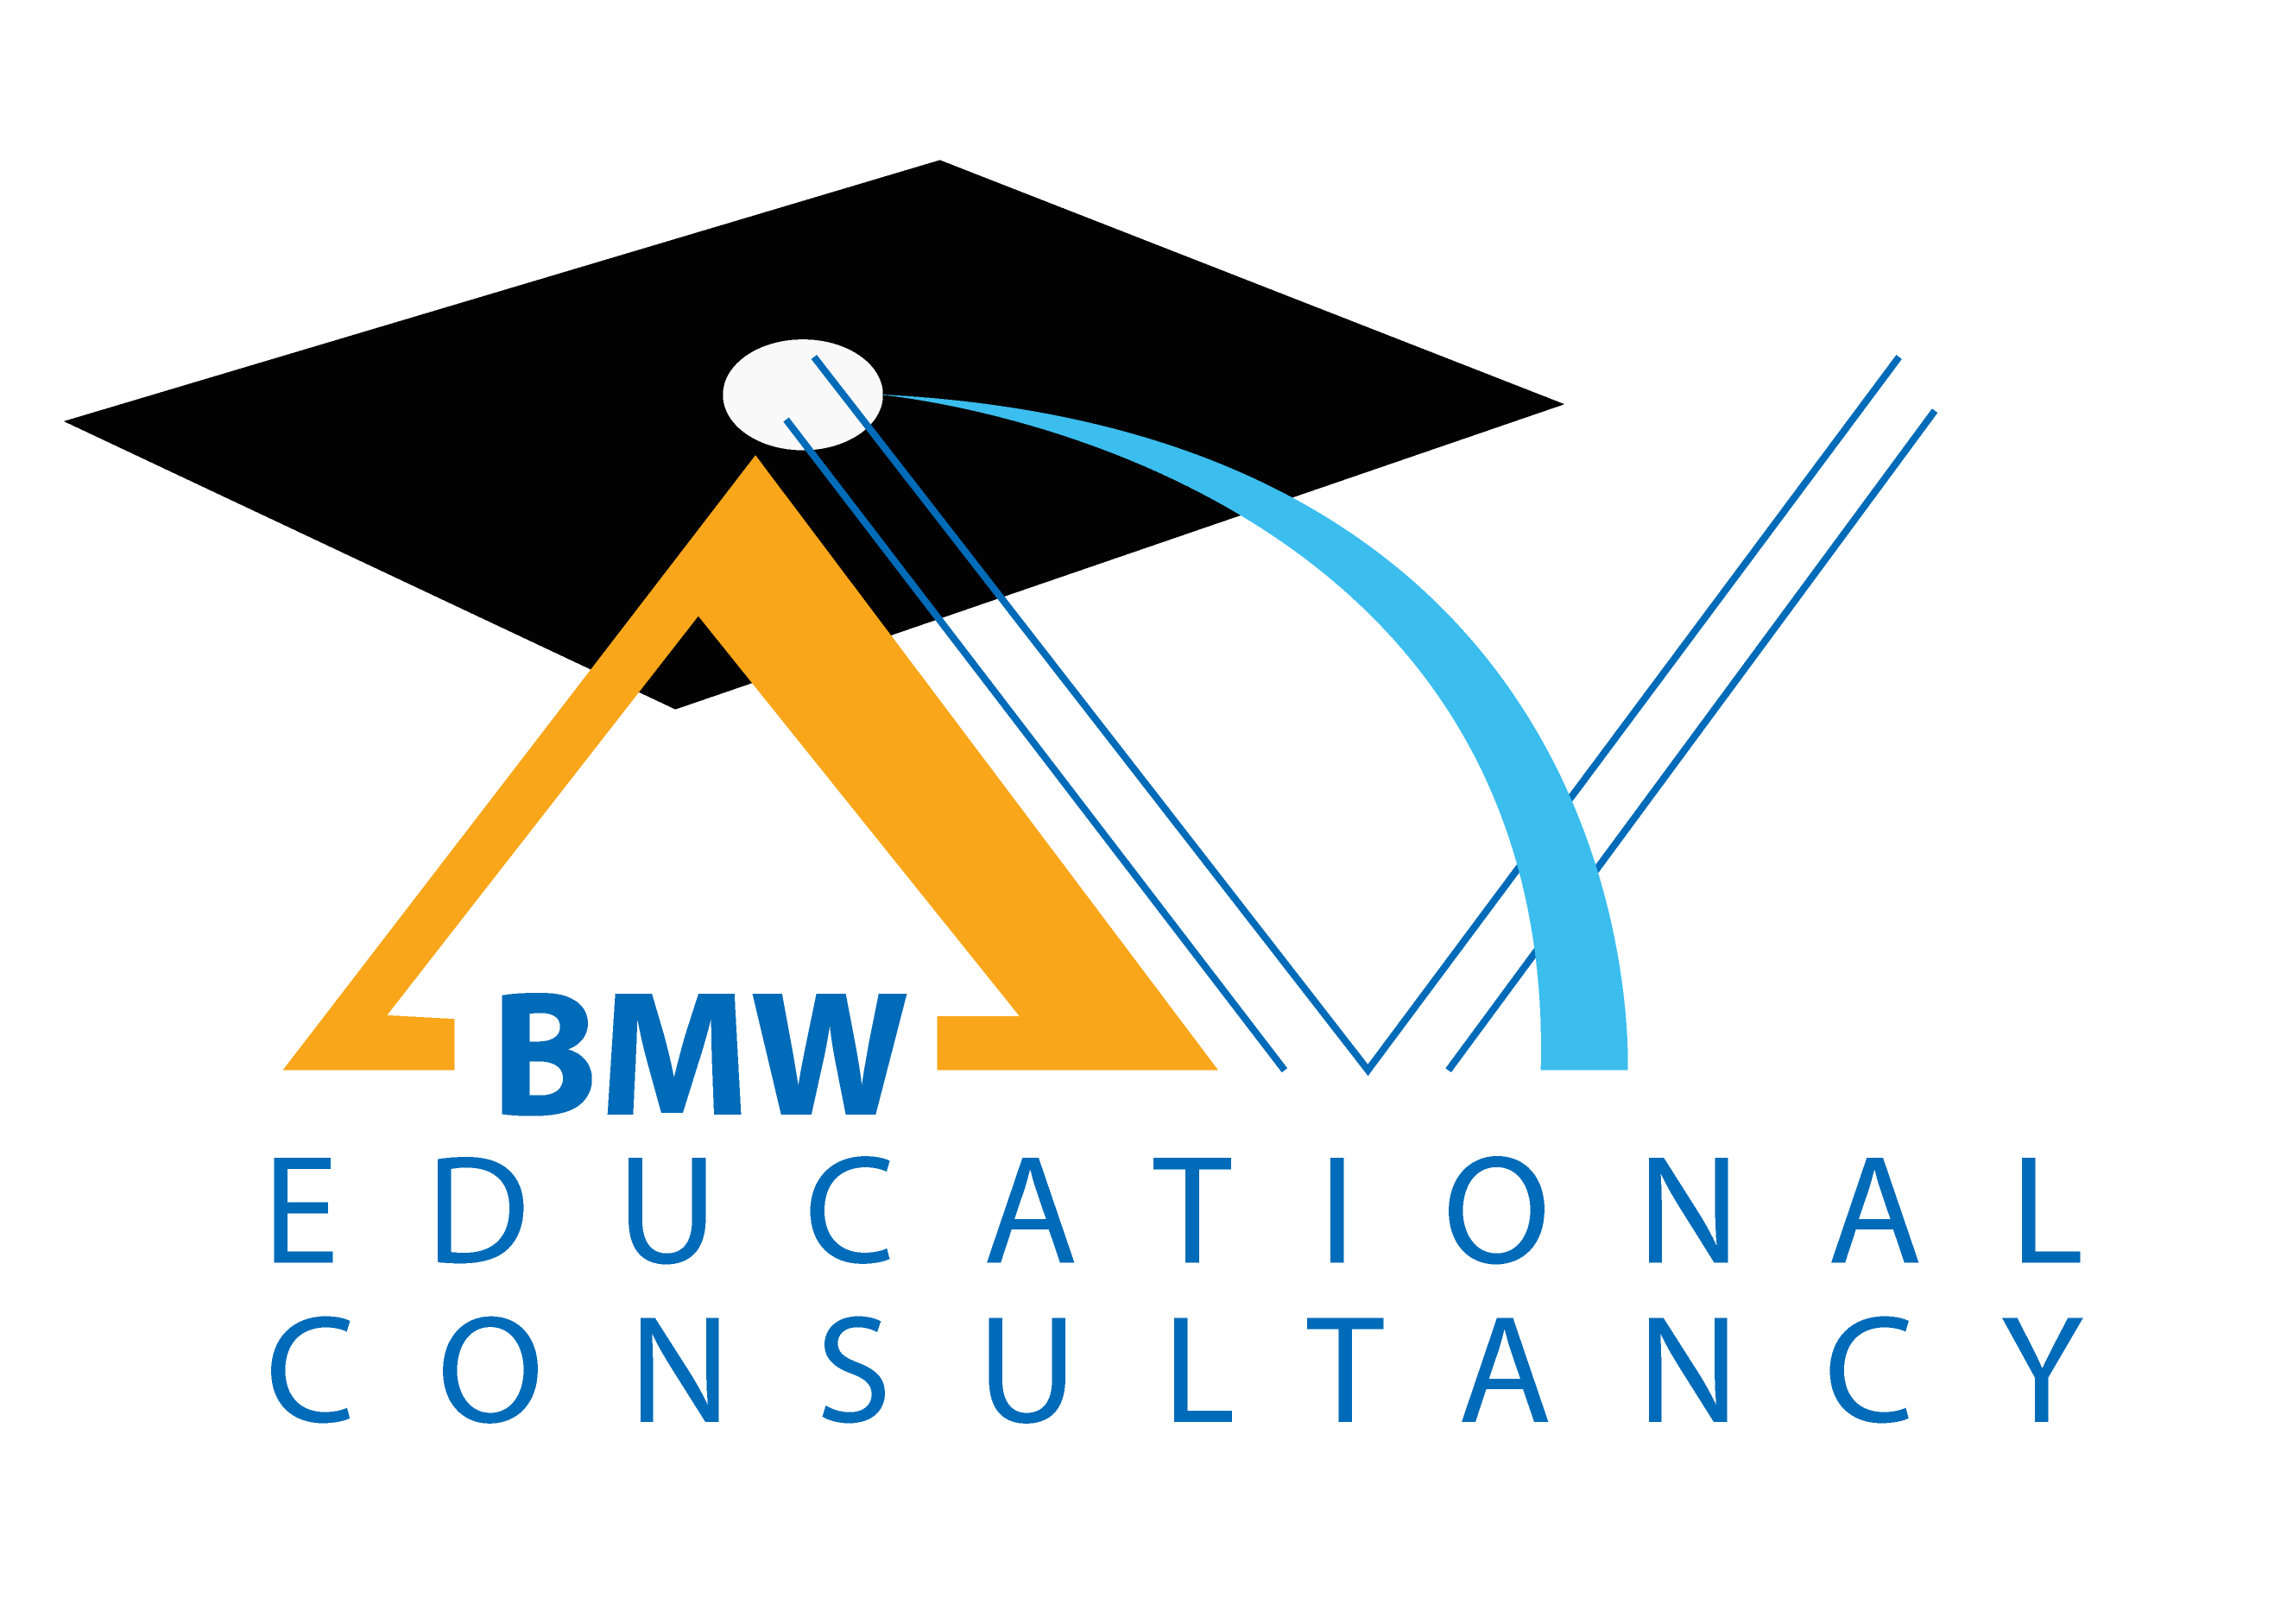 BMW Educational Consultancy